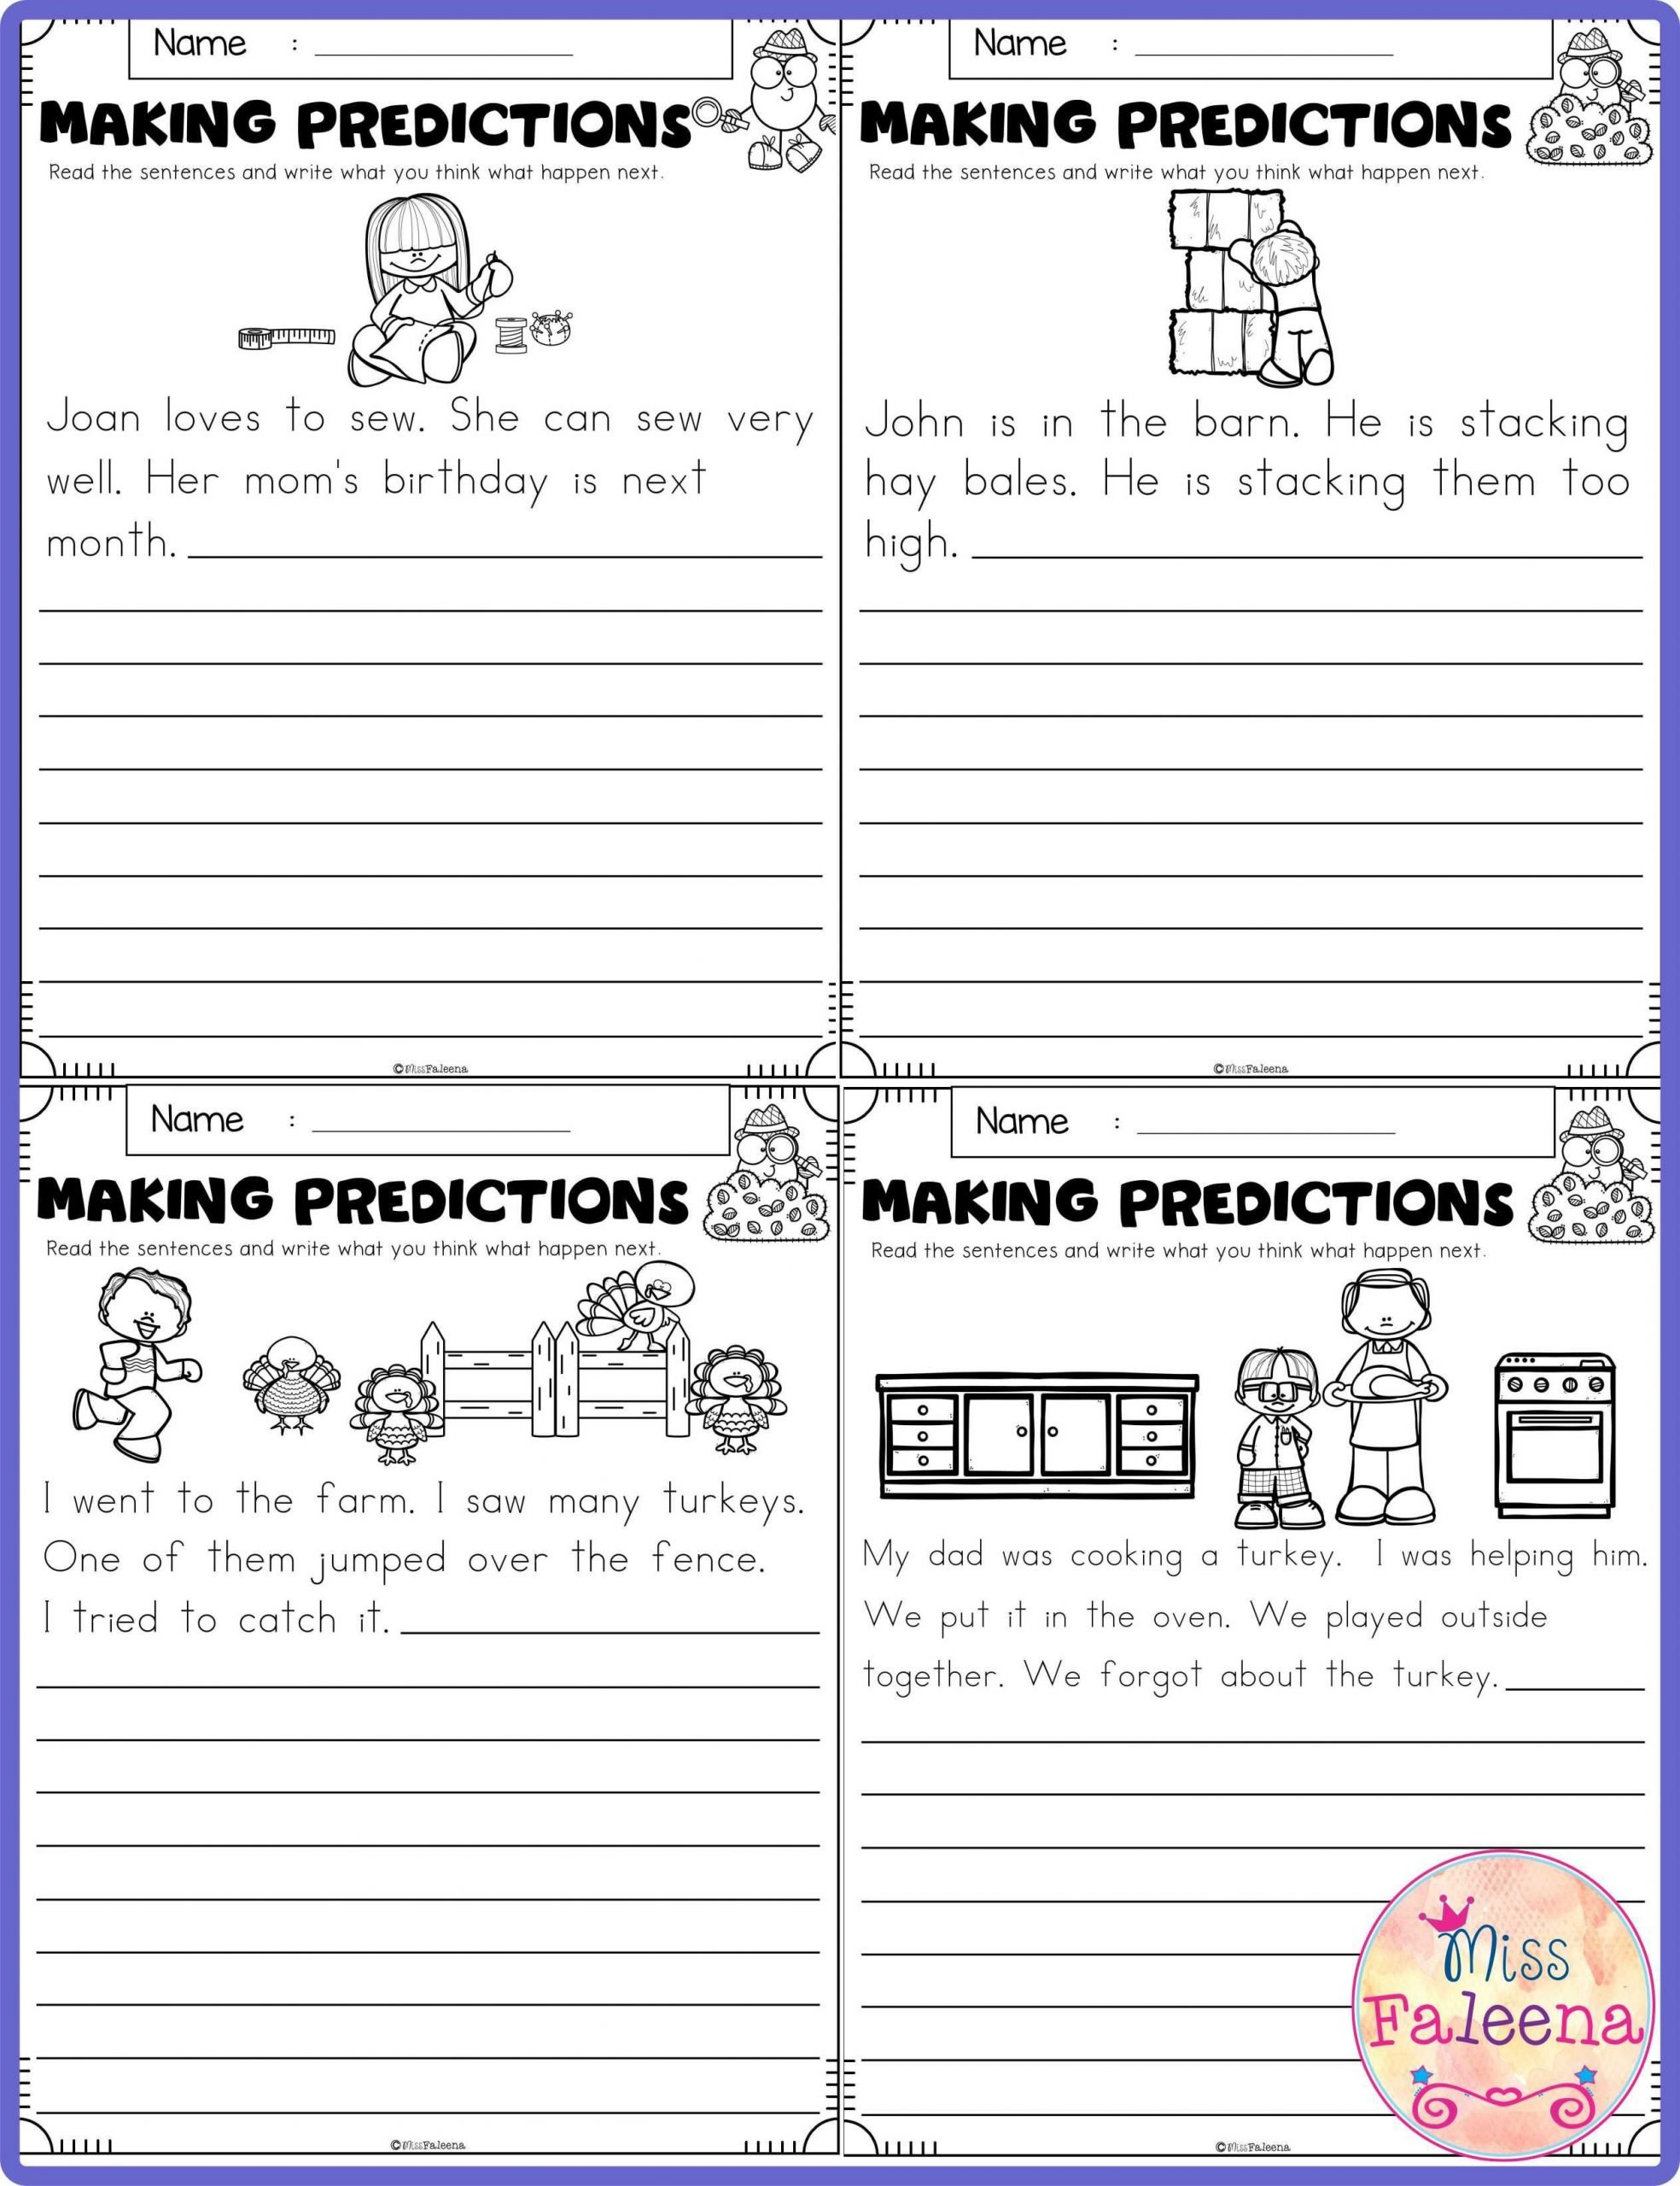 Making Predictions Worksheets 3rd Grade November Making Predictions Contains with total 30 Pages Of